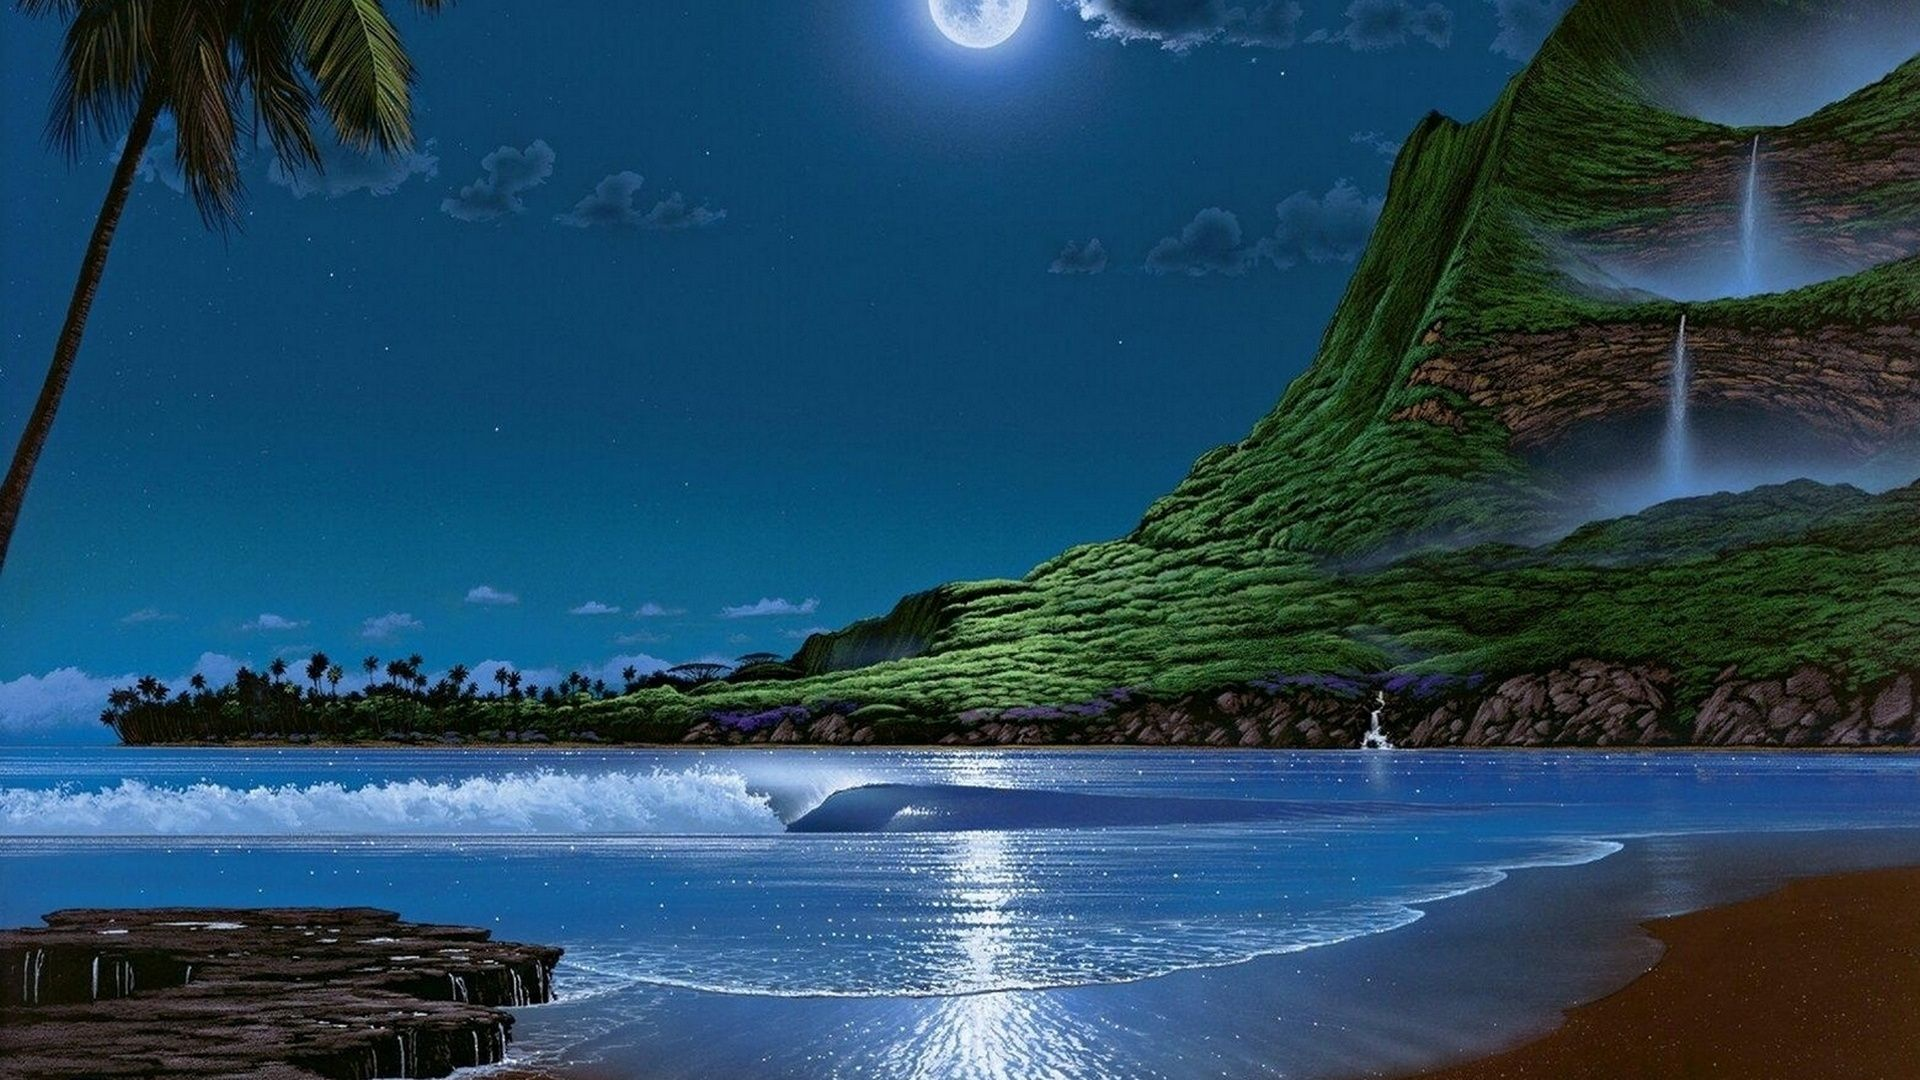 Amazing Fantasy World & Ocean Waves HD Wallpaper 1920x1080 HD | Wallpaper | Free animated ...